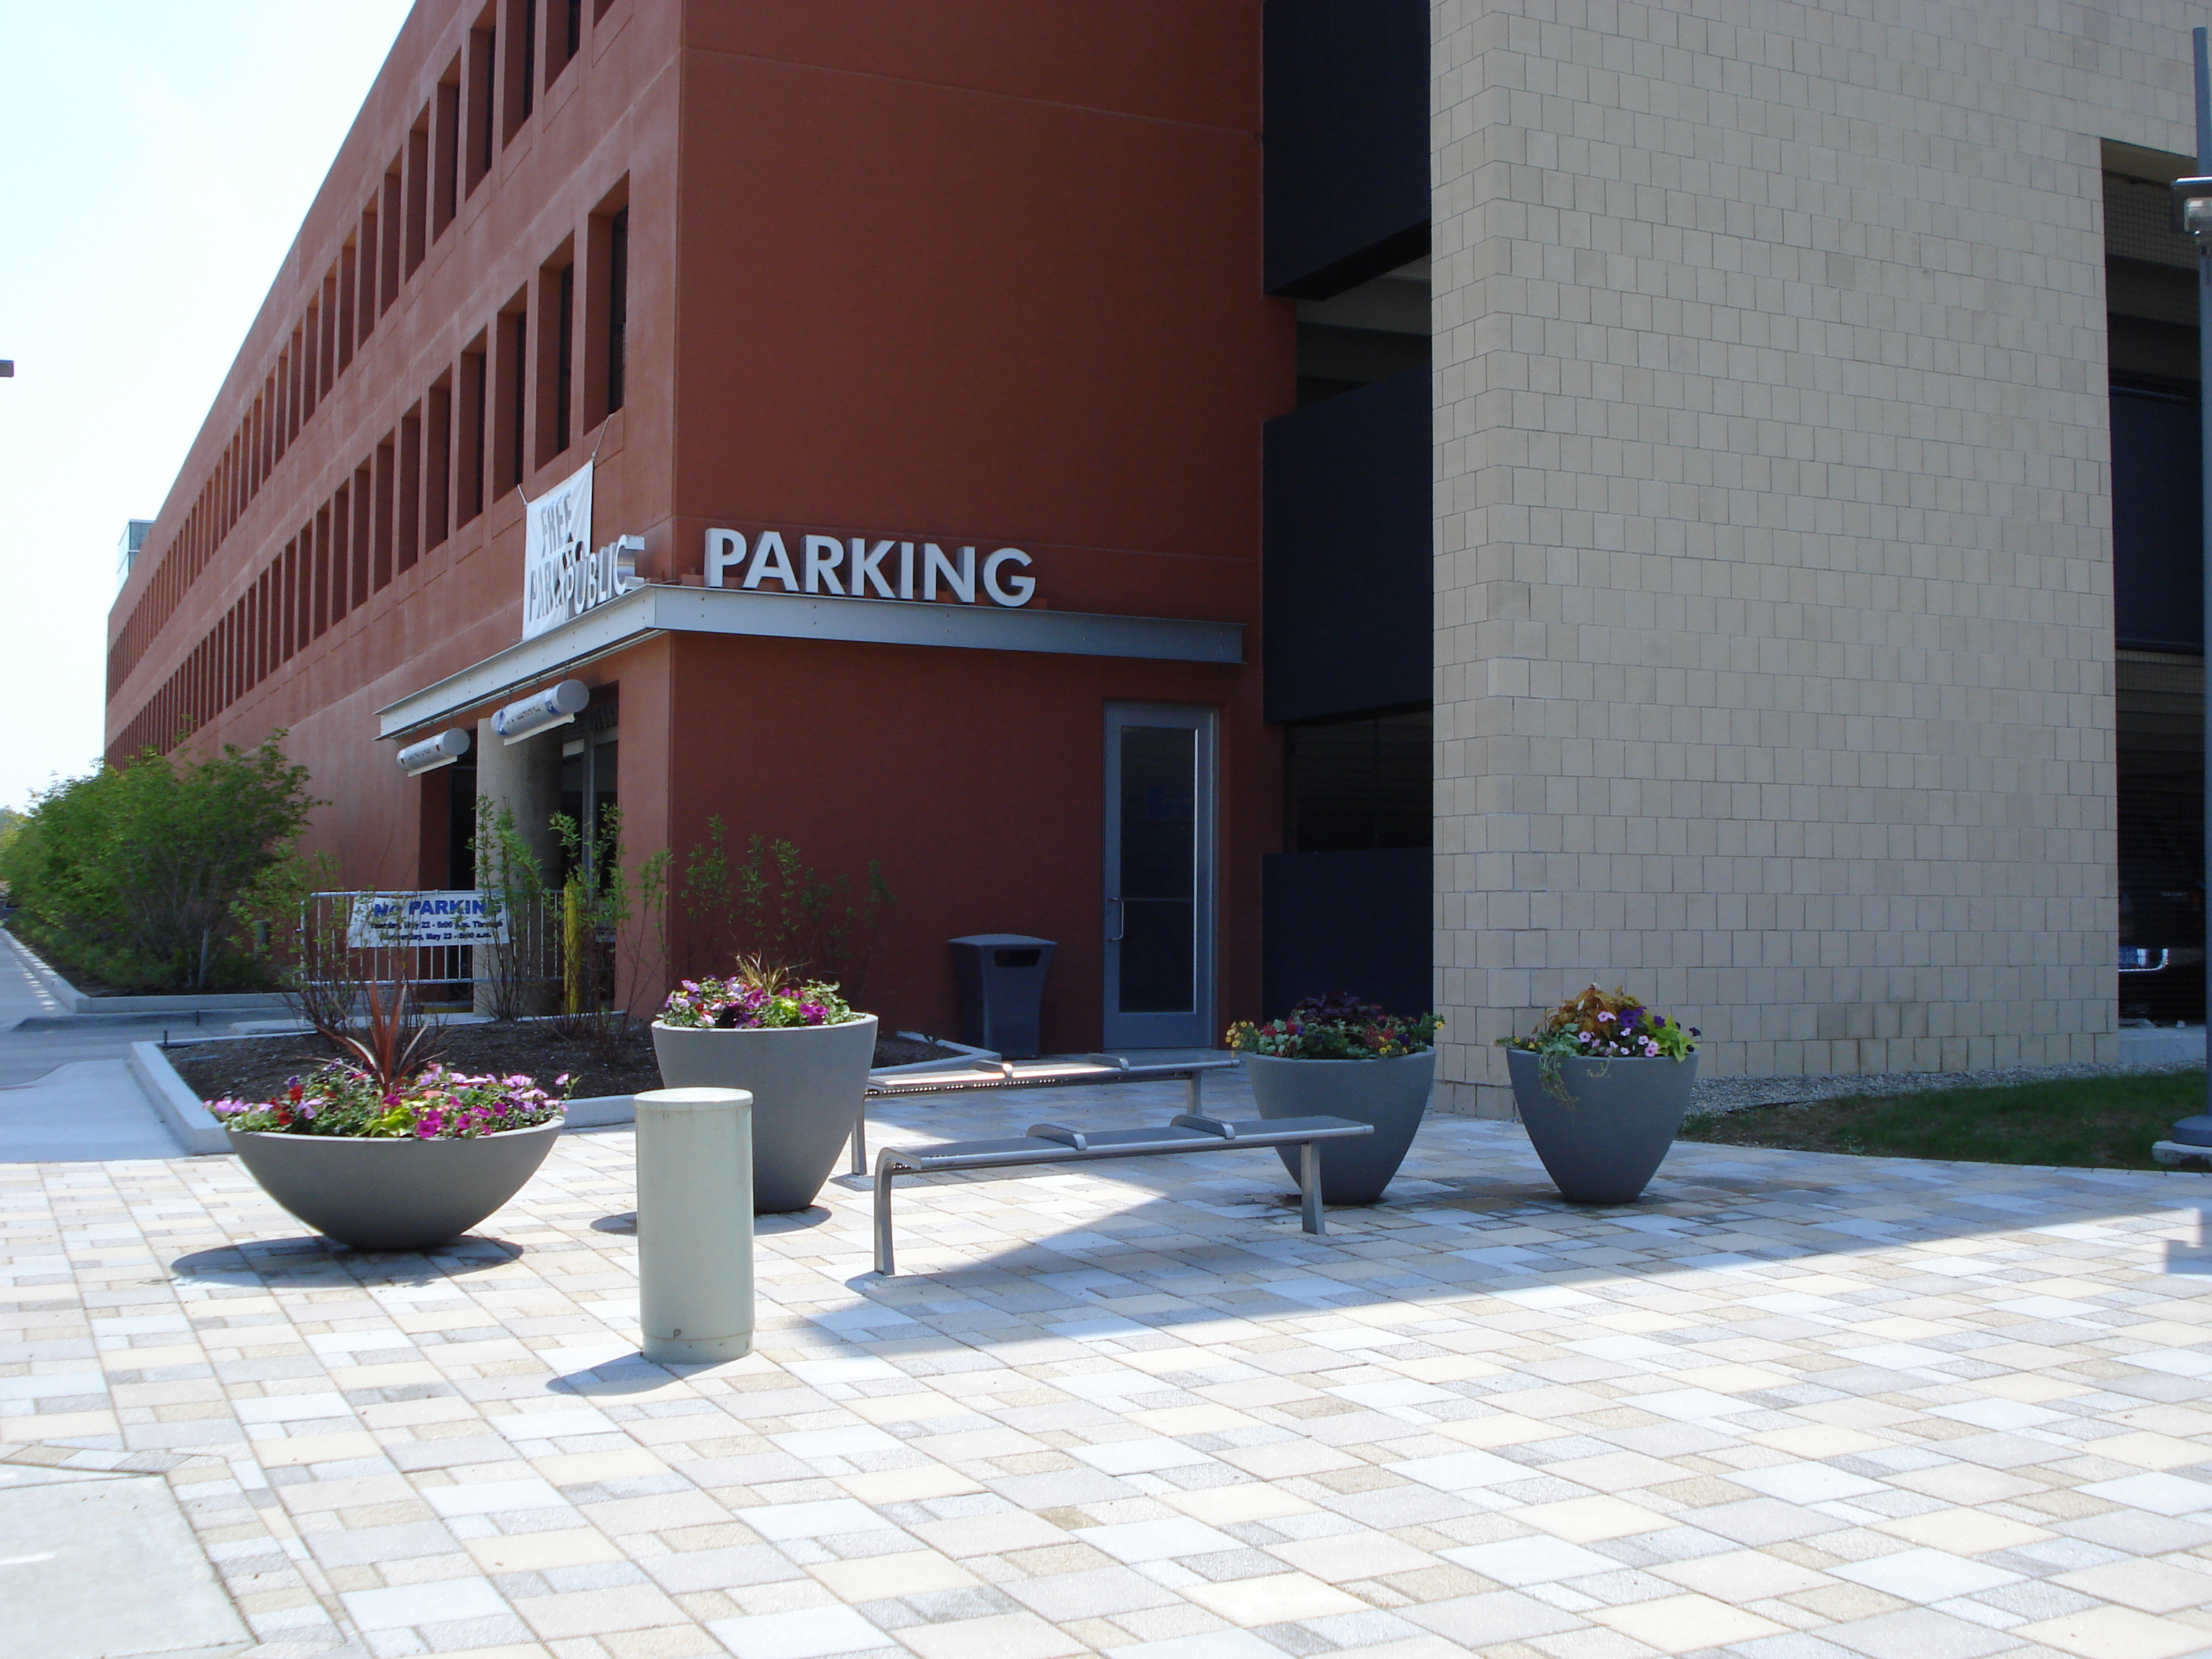 Parking, parking structure, parking garage, parking design, architecture, engineer, planning, parking consultant